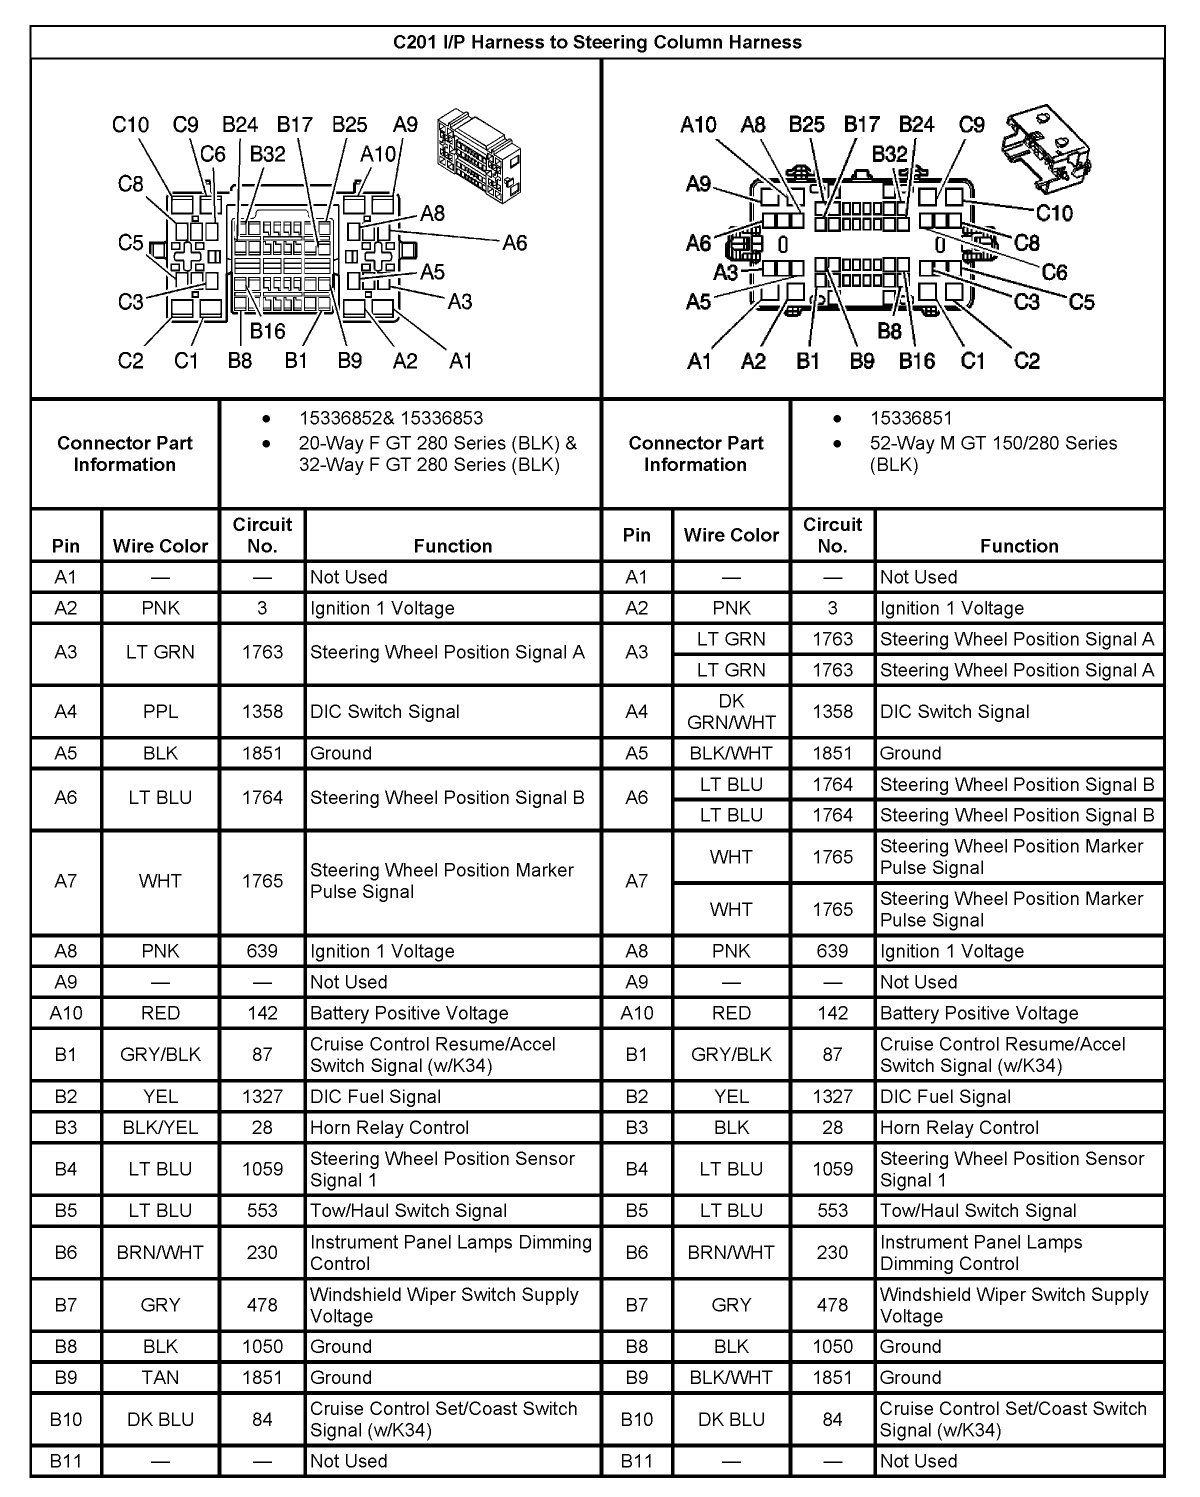 2004 gmc sierra radio wiring diagram | free wiring diagram 2005 gmc sierra radio wiring harness #1